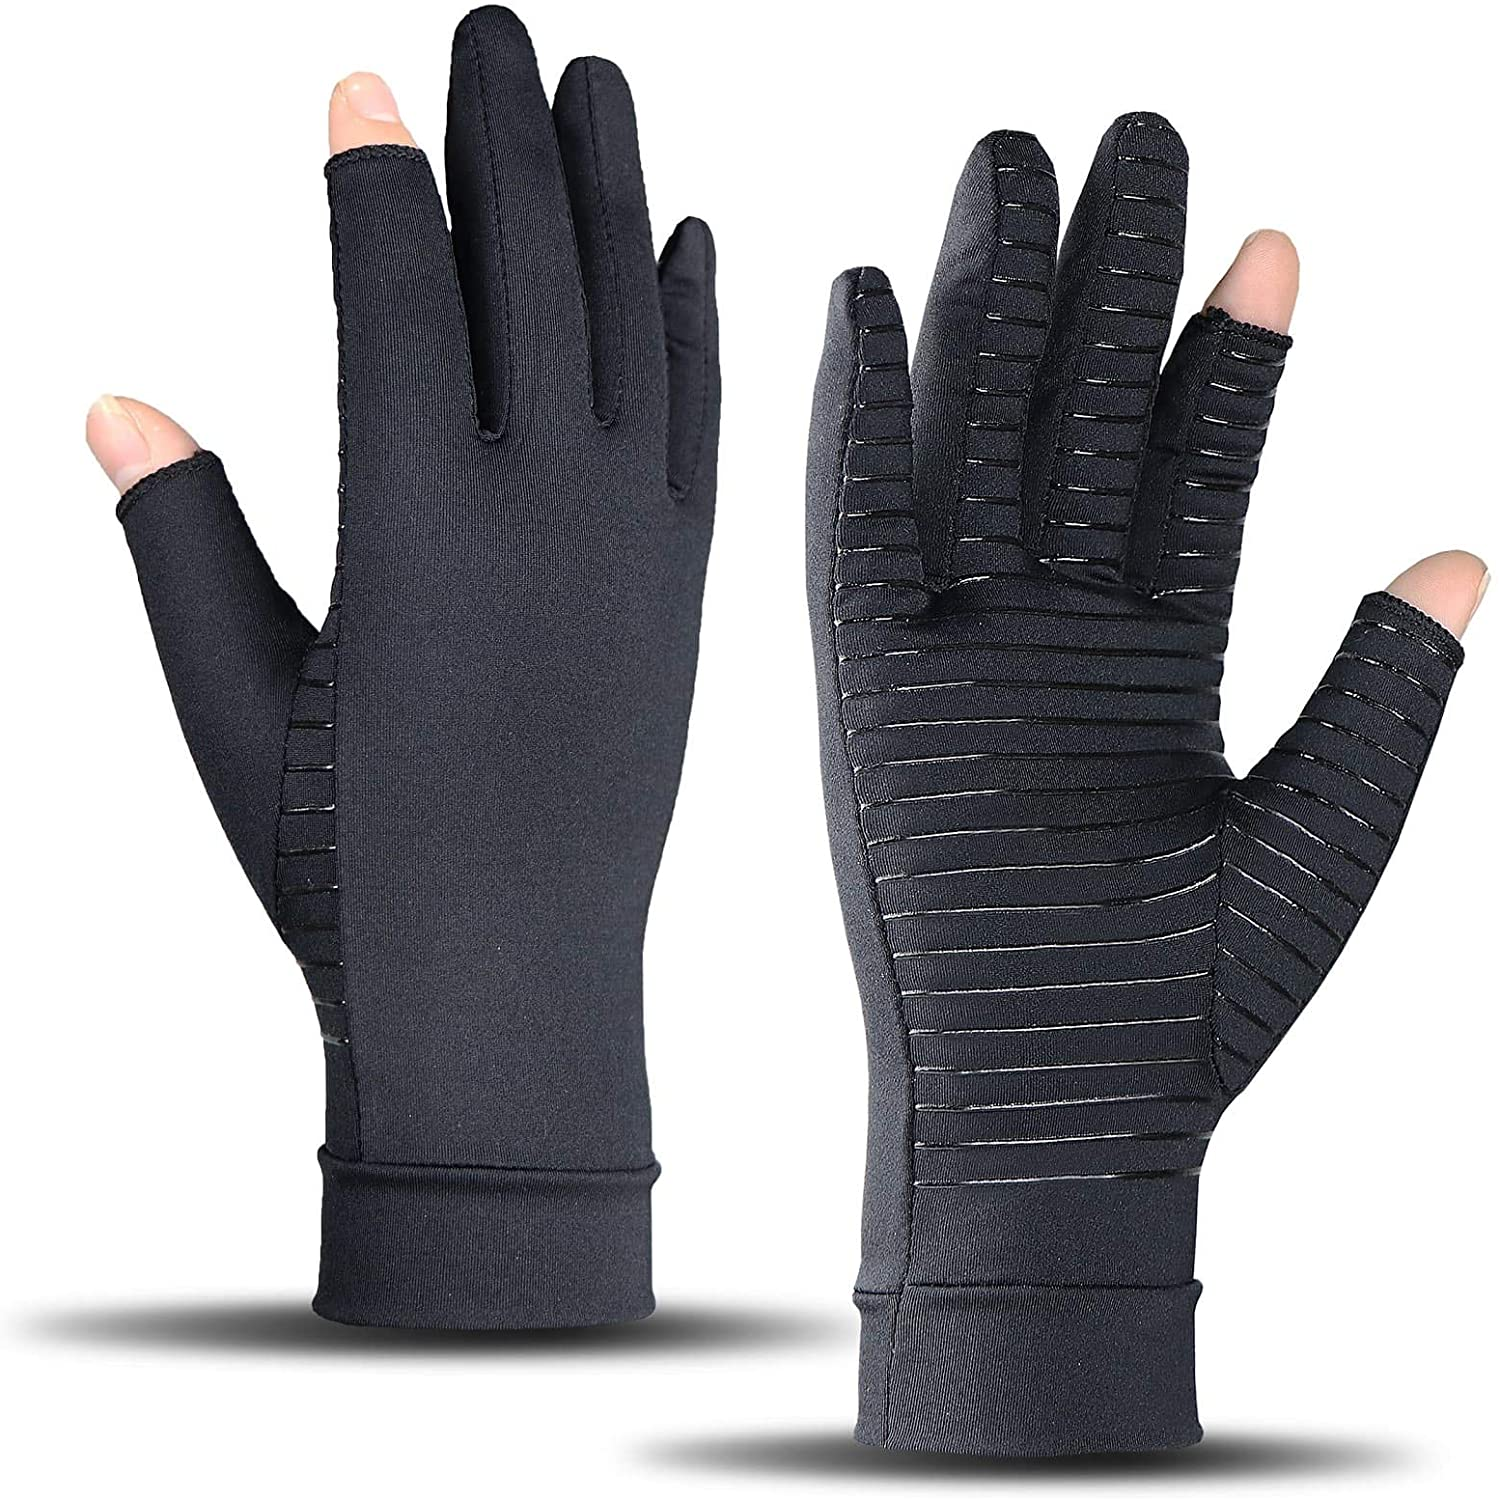 Arthritis Compression Gloves for Women and Men, Copper Gloves for Arthritis, Hand Pain, Swelling, Rheumatoid, and Everyday Hands Support (Pair) (Black, Medium)